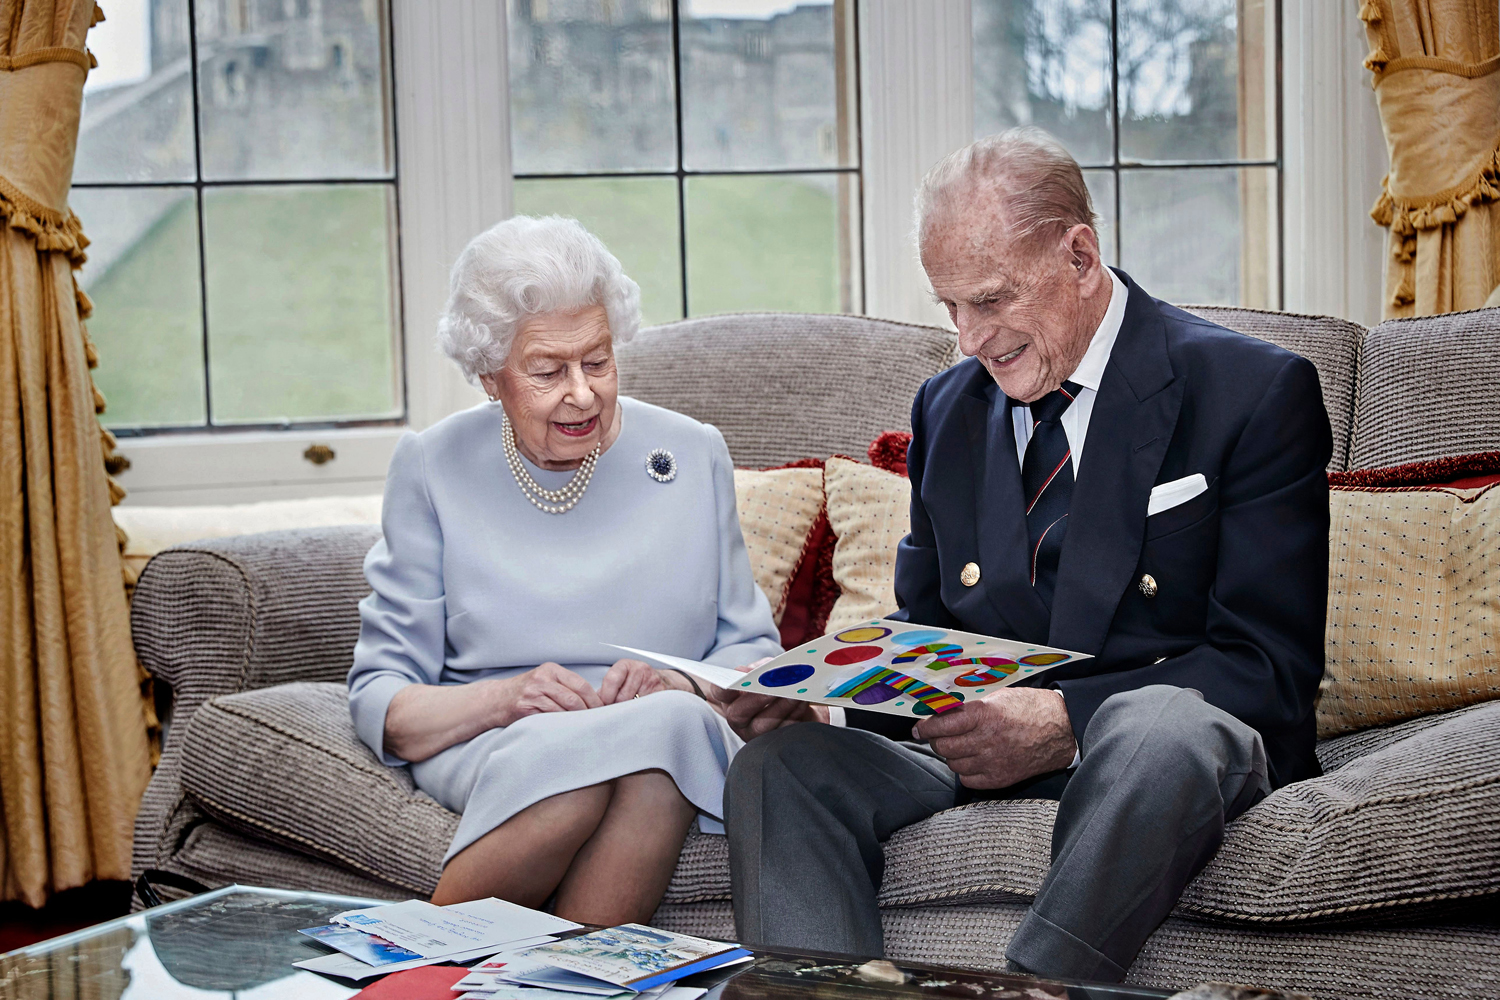 Queen Elizabeth and Prince Philip Duke Of Edinburgh 73rd Wedding Anniversary Official Portrait, Windsor, UK - 17 Nov 2020